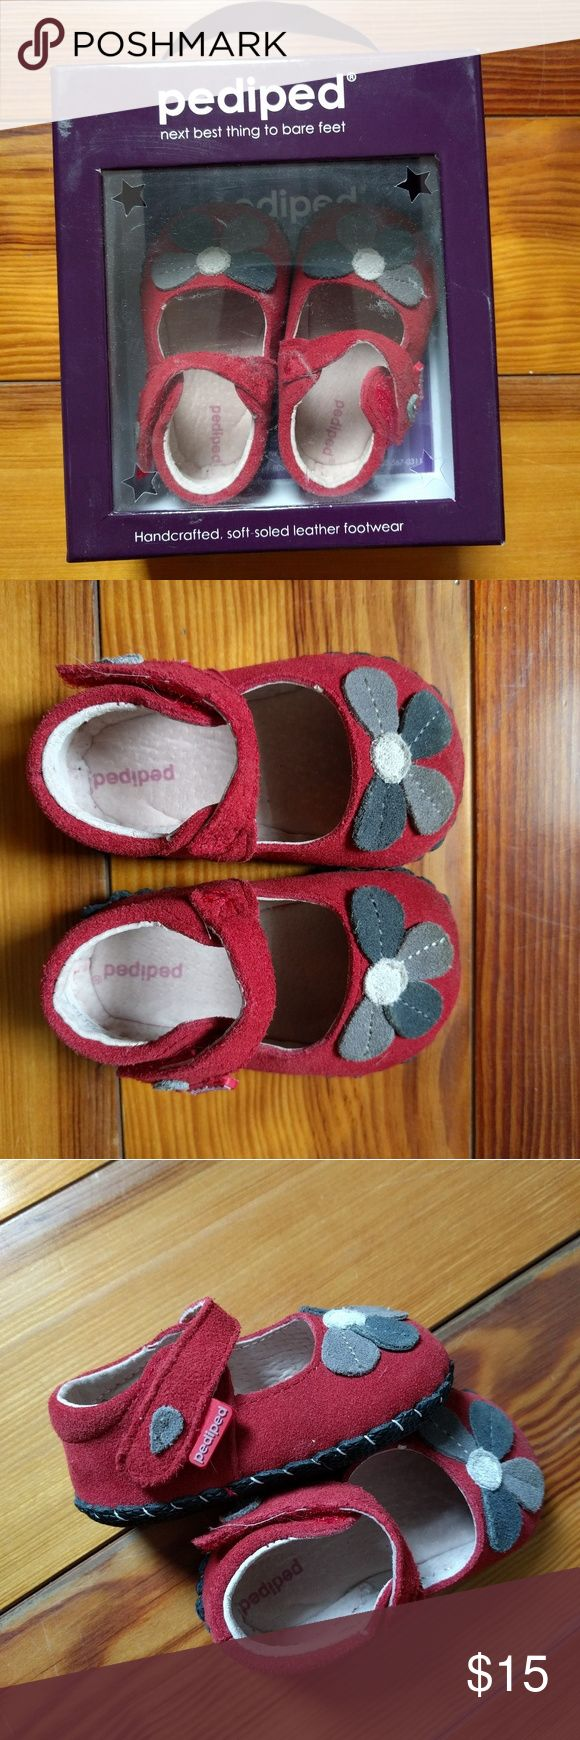 Pediped Red Shoes Size 0-6m These are so cute! Lovely red shoes in great condition! pediped Shoes Baby & Walker